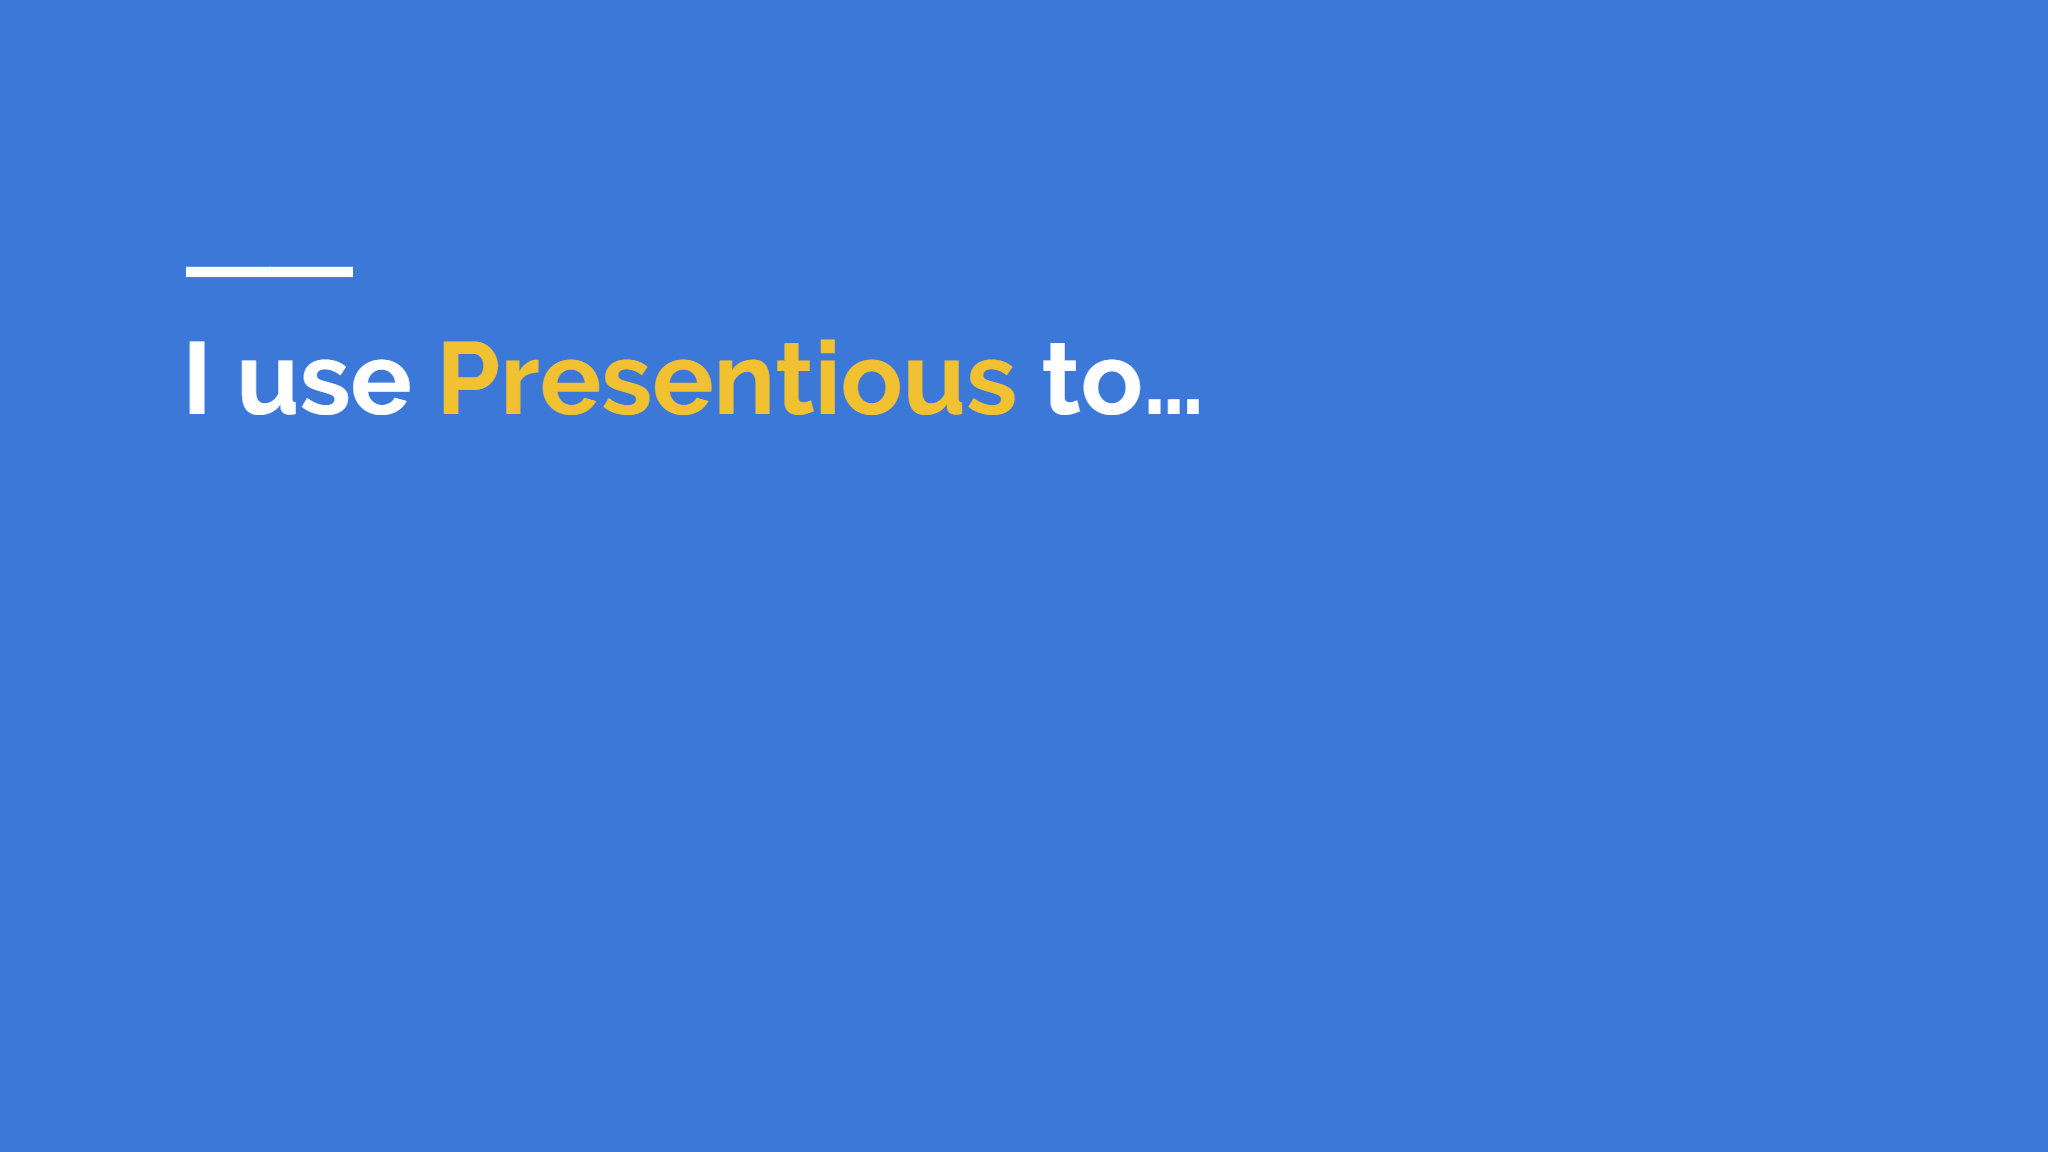 I use  Presentious  to...